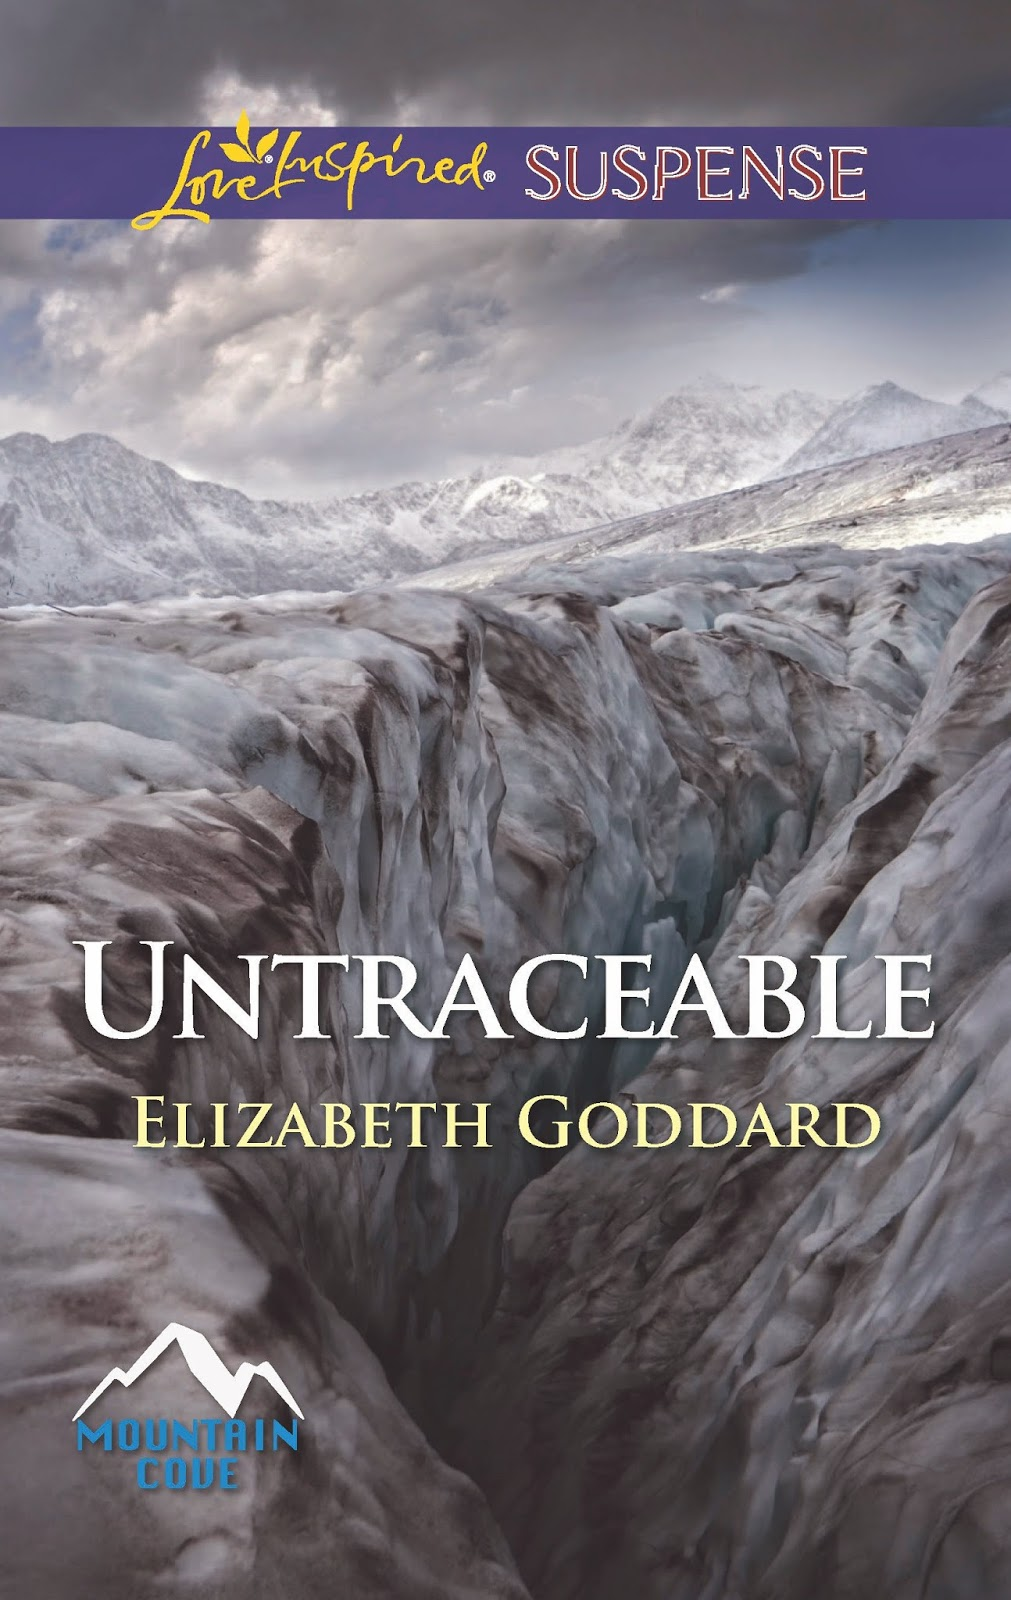 http://www.amazon.com/Untraceable-Mountain-Cove-Elizabeth-Goddard/dp/0373446578/ref=tmm_mmp_title_0?ie=UTF8&qid=1425144554&sr=8-1